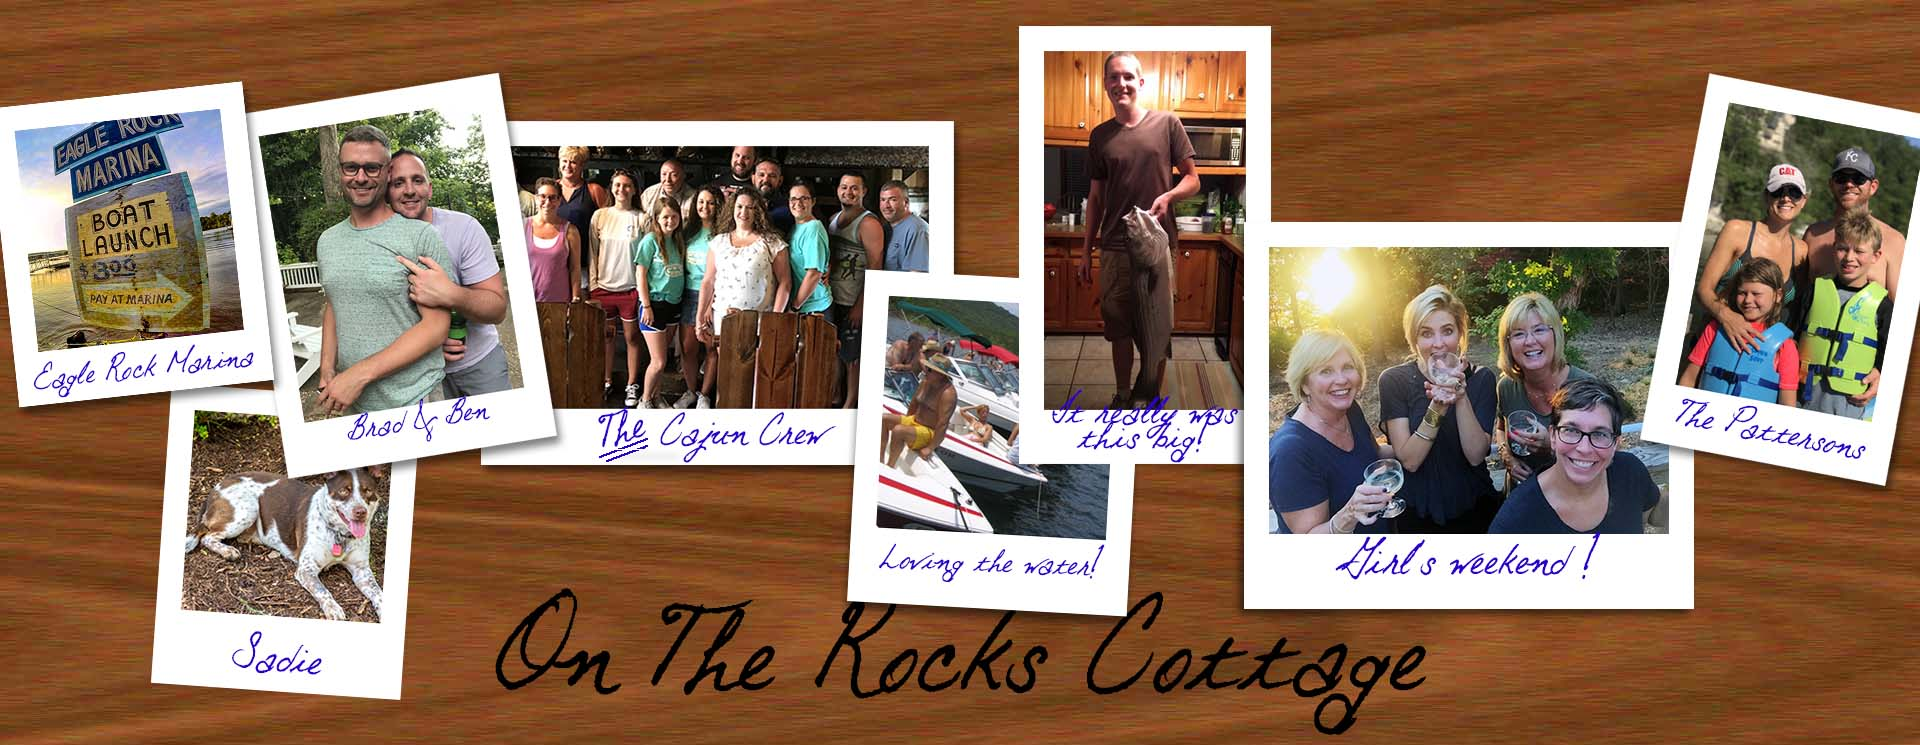 On The Rocks photo gallery header image